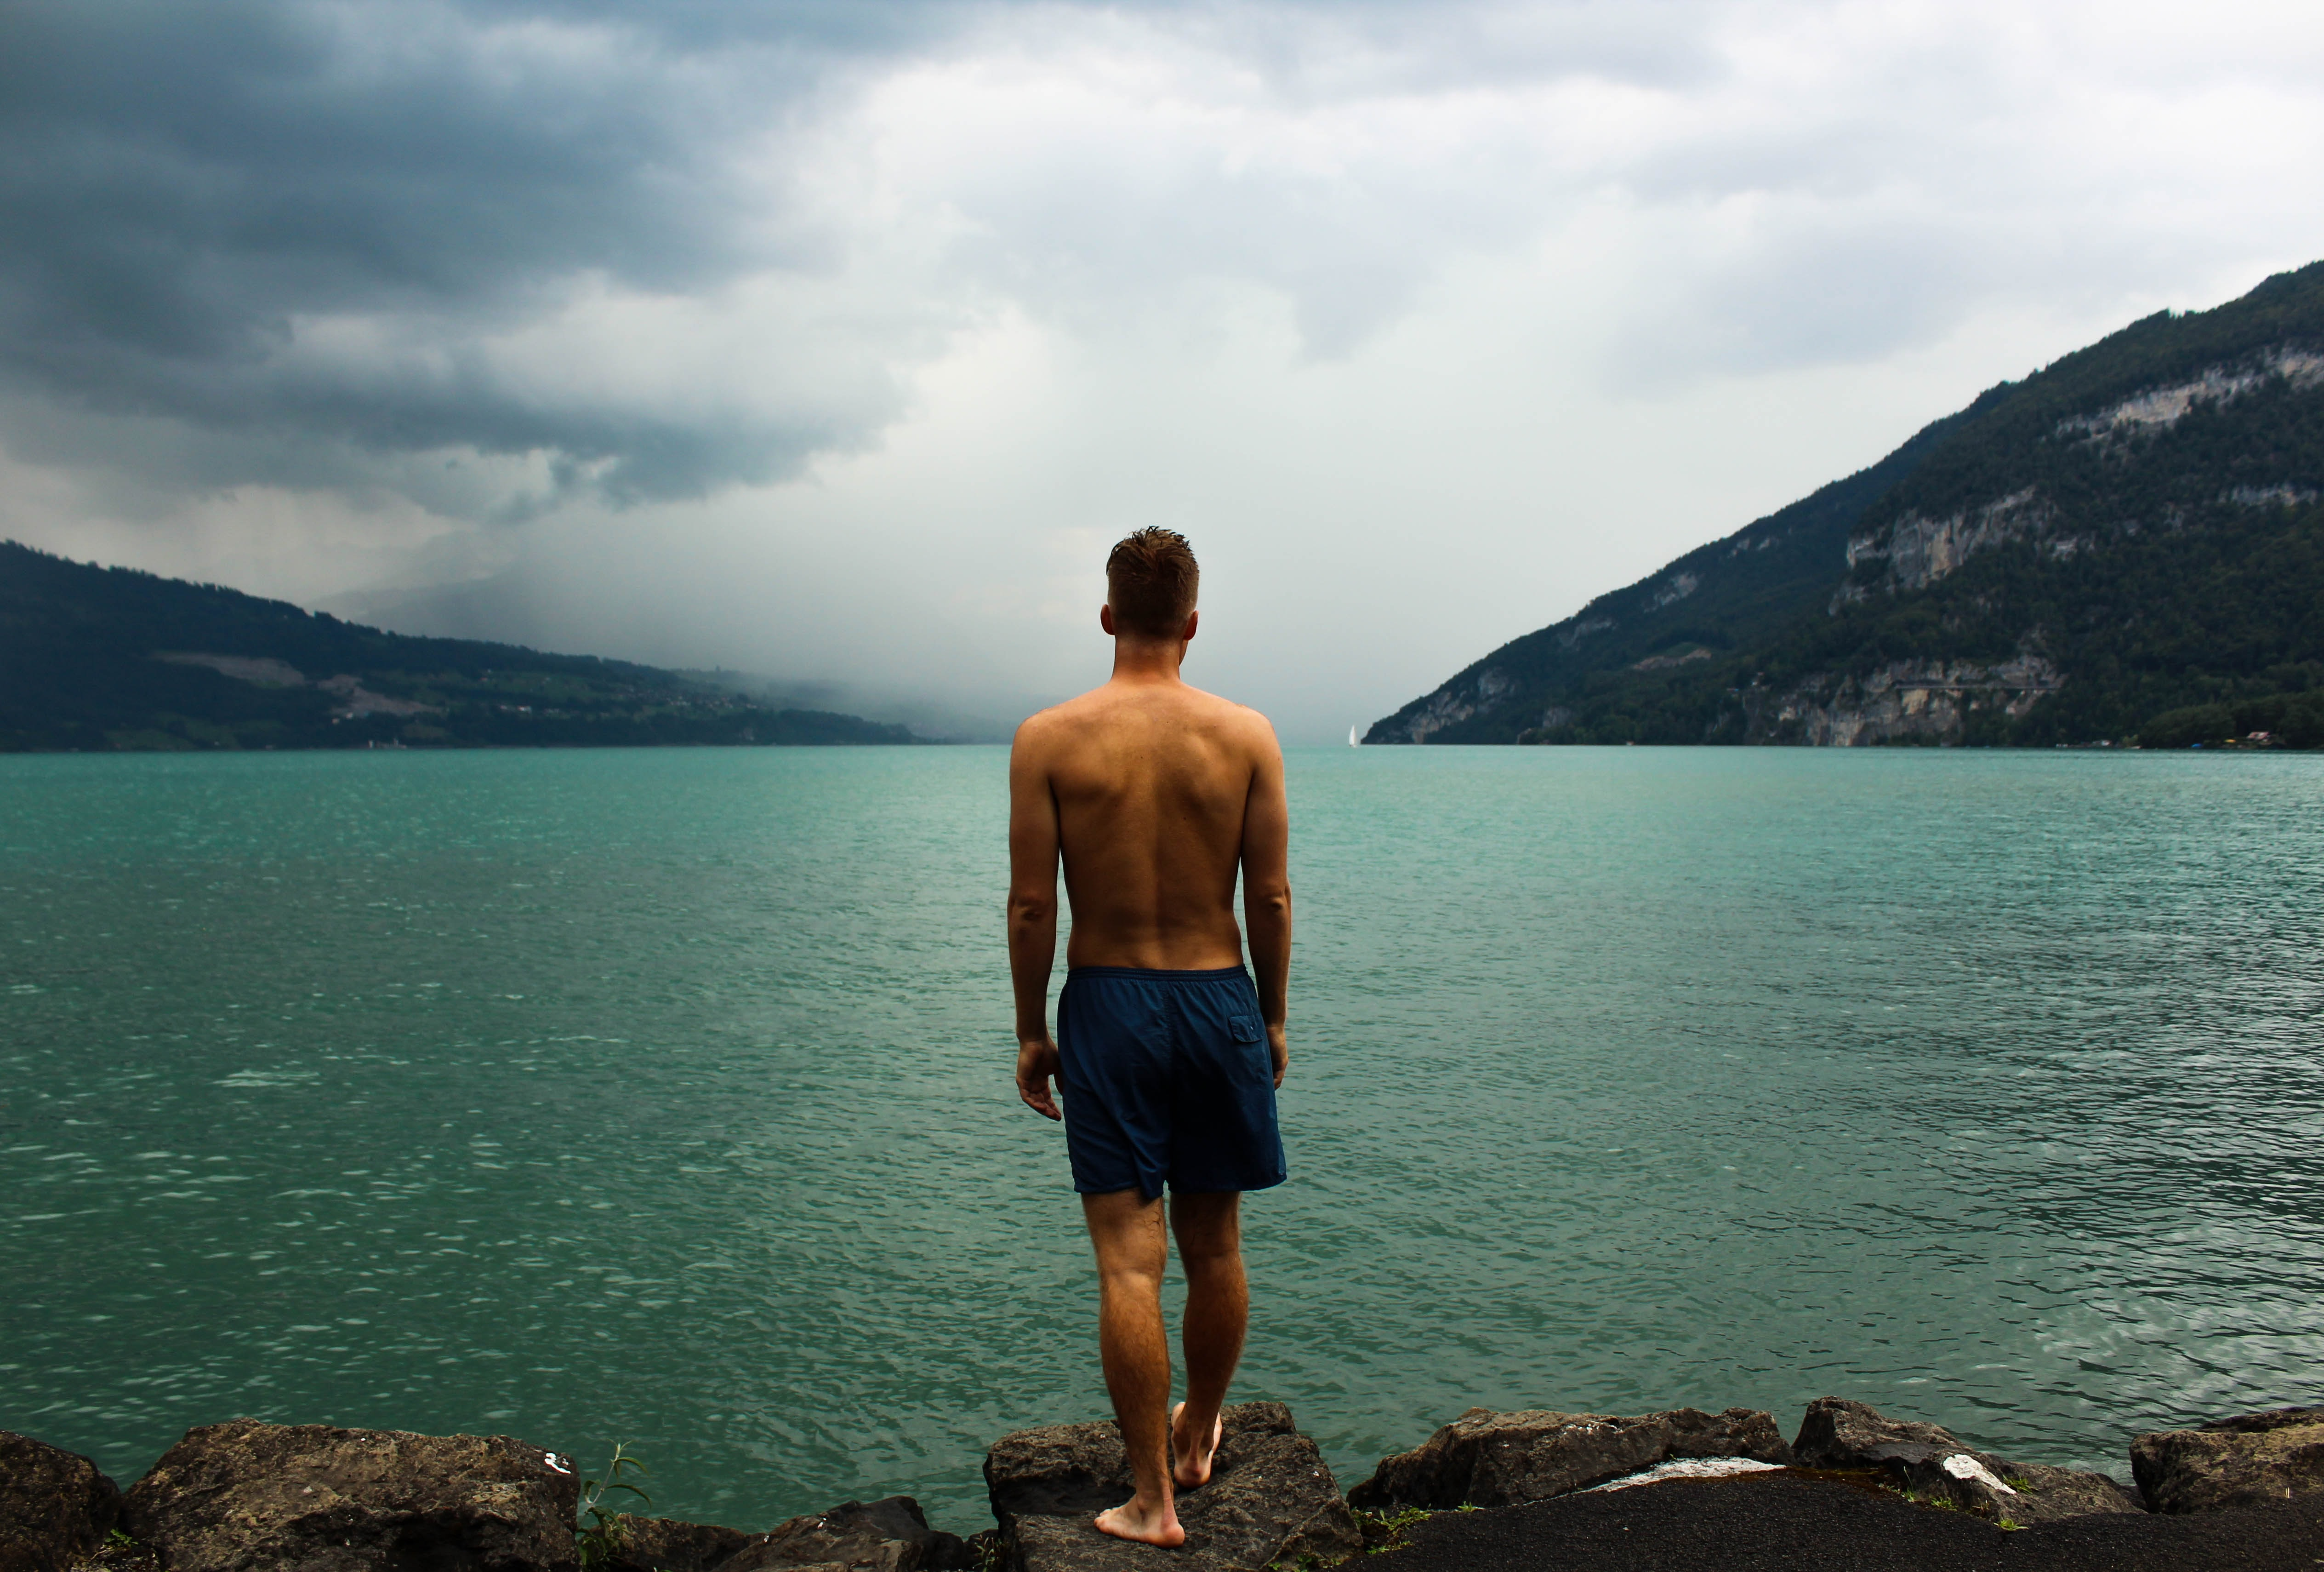 Man about to take a swim in a lake by rocky bluffs